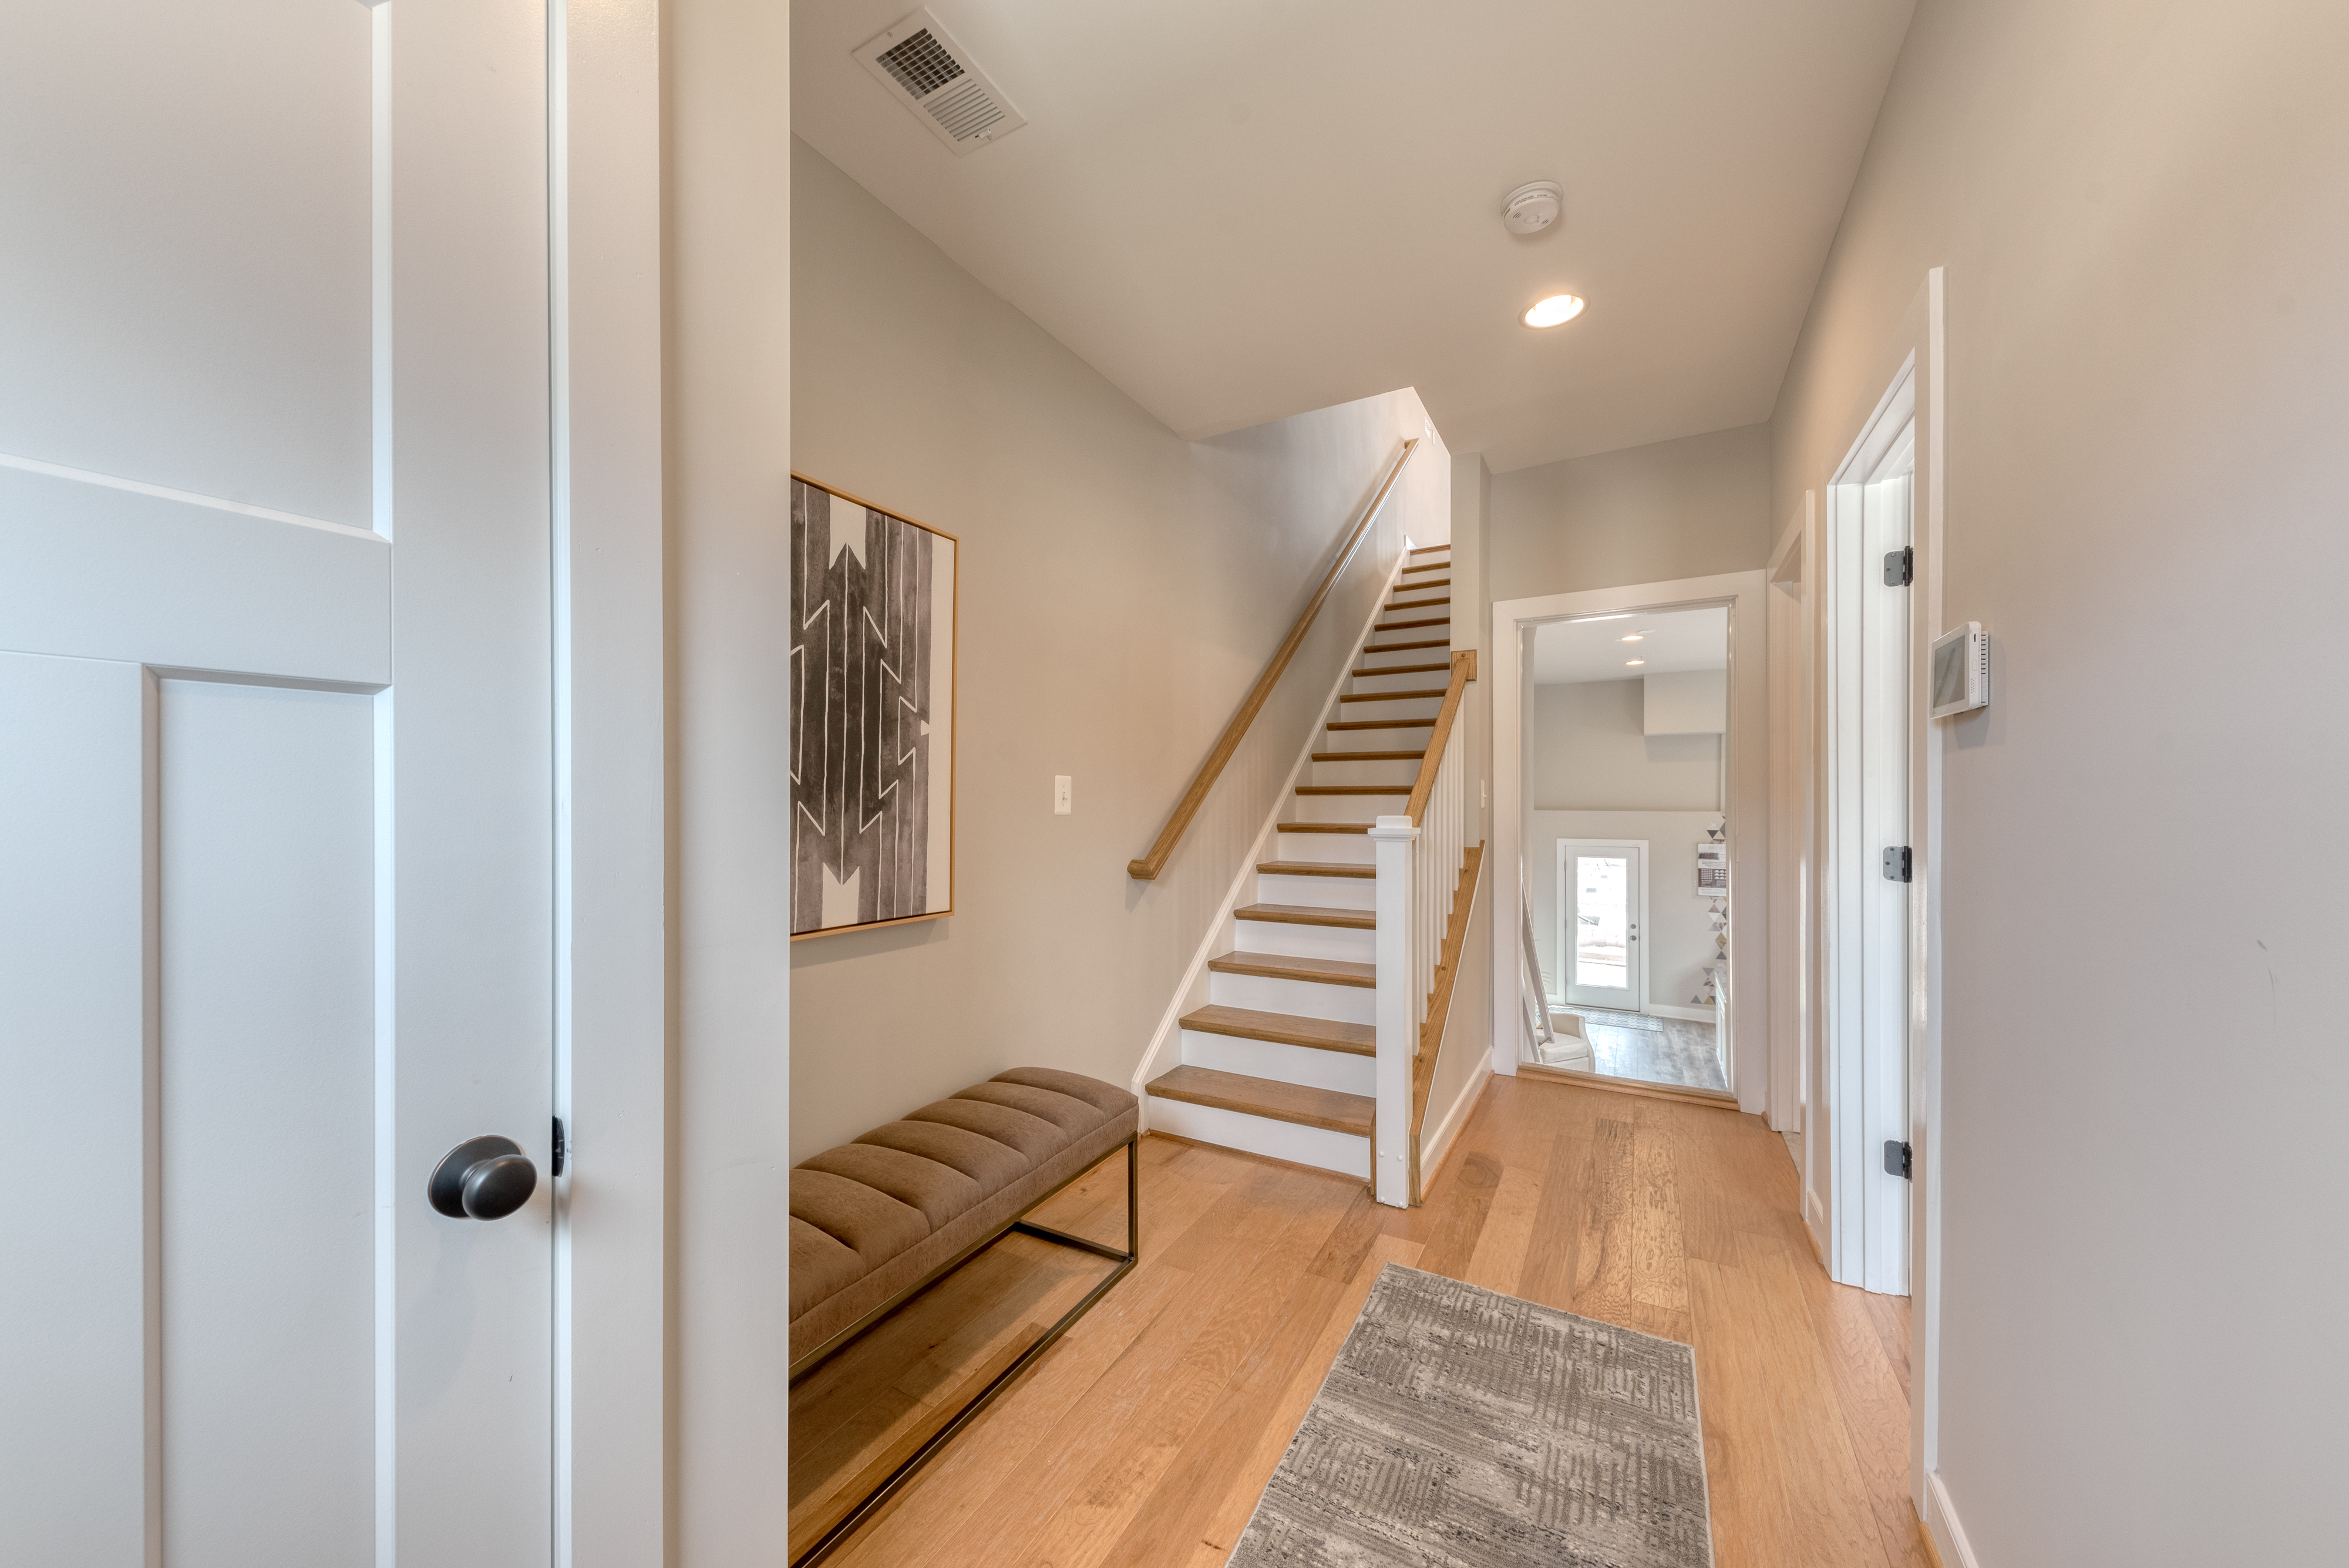 Entry View to Stairs and Garage Entrance Door